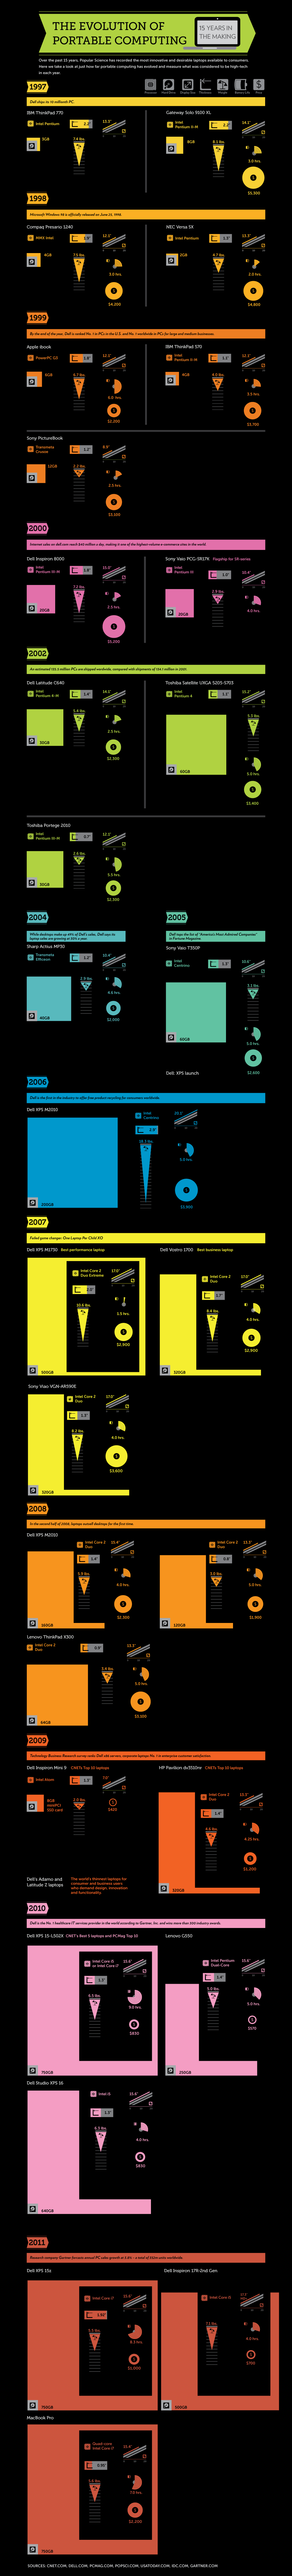 History of Laptops: Portable Computing from 1997 to 2011 [Infographic] - History Of Dell PNG